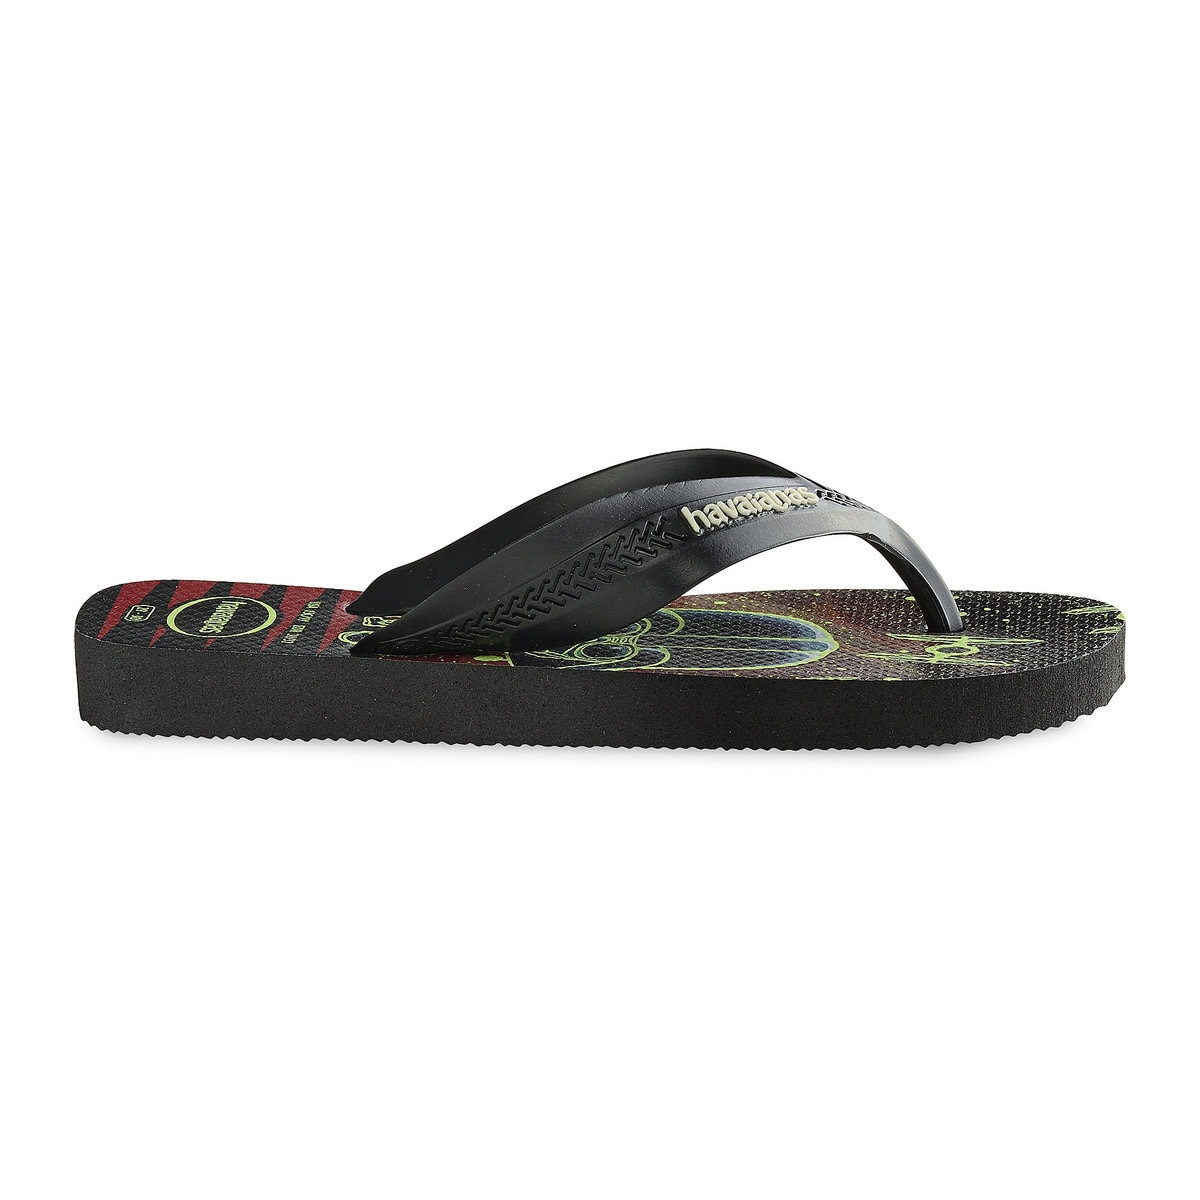 7e81137d3 Product Image of Star Wars Glow-in-the-Dark Flip Flops for Kids